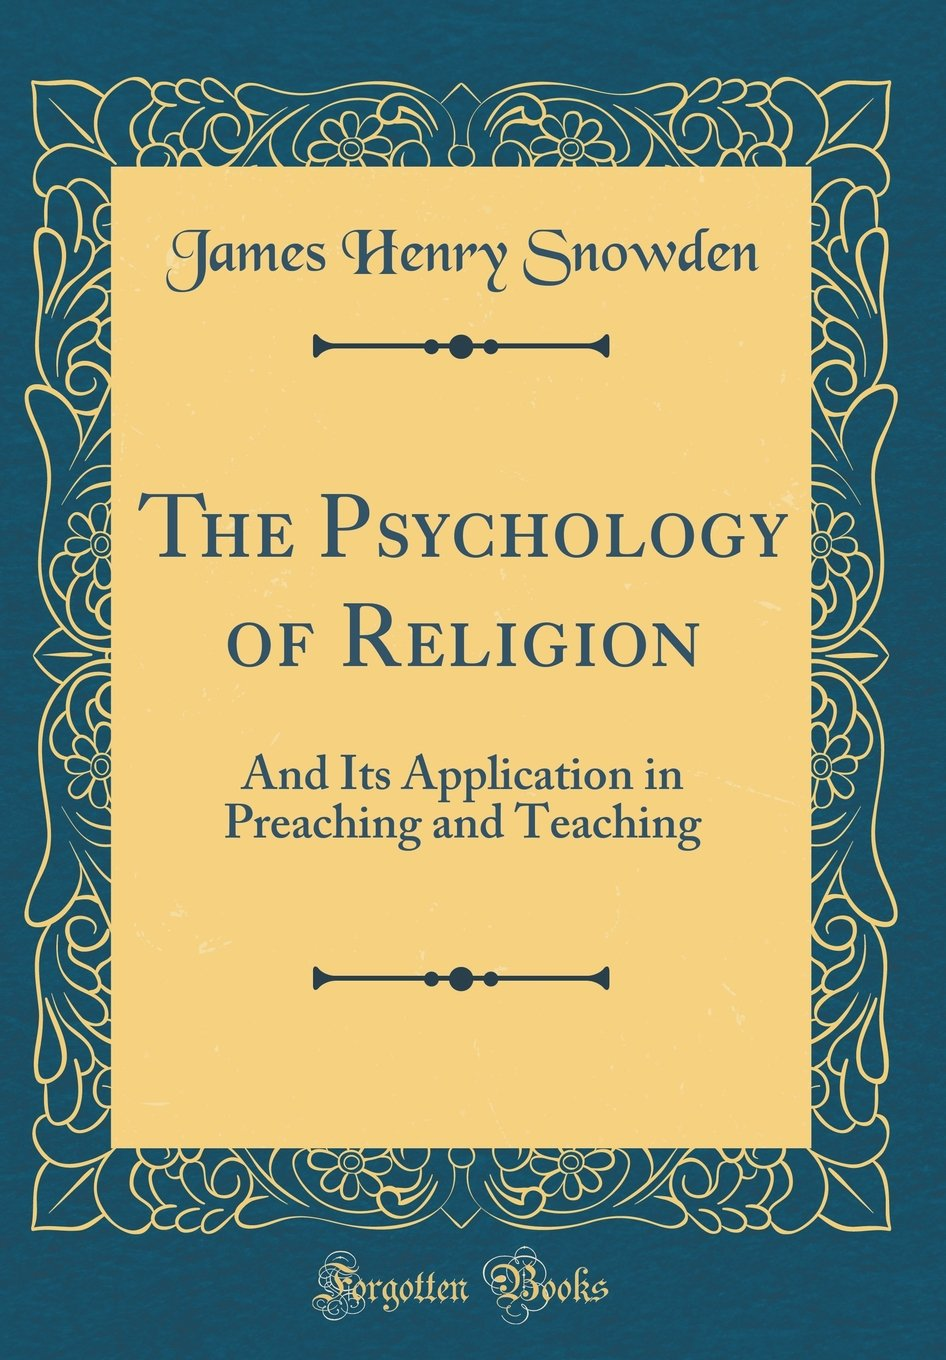 Download The Psychology of Religion: And Its Application in Preaching and Teaching (Classic Reprint) ebook